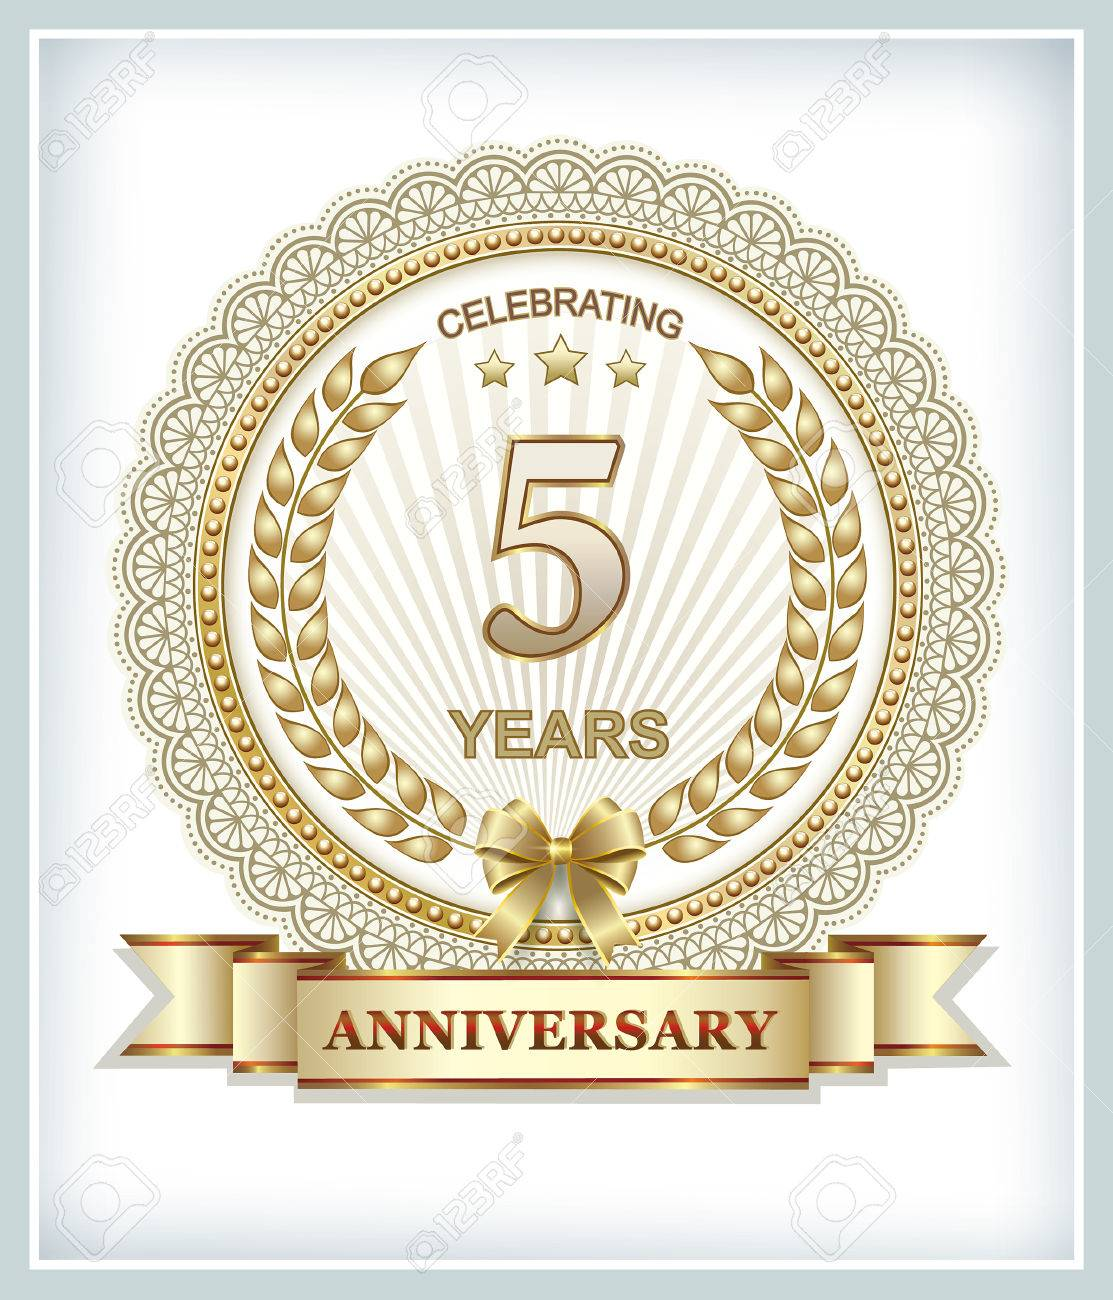 Greeting Card With 5 Wedding Anniversary Royalty Free Cliparts